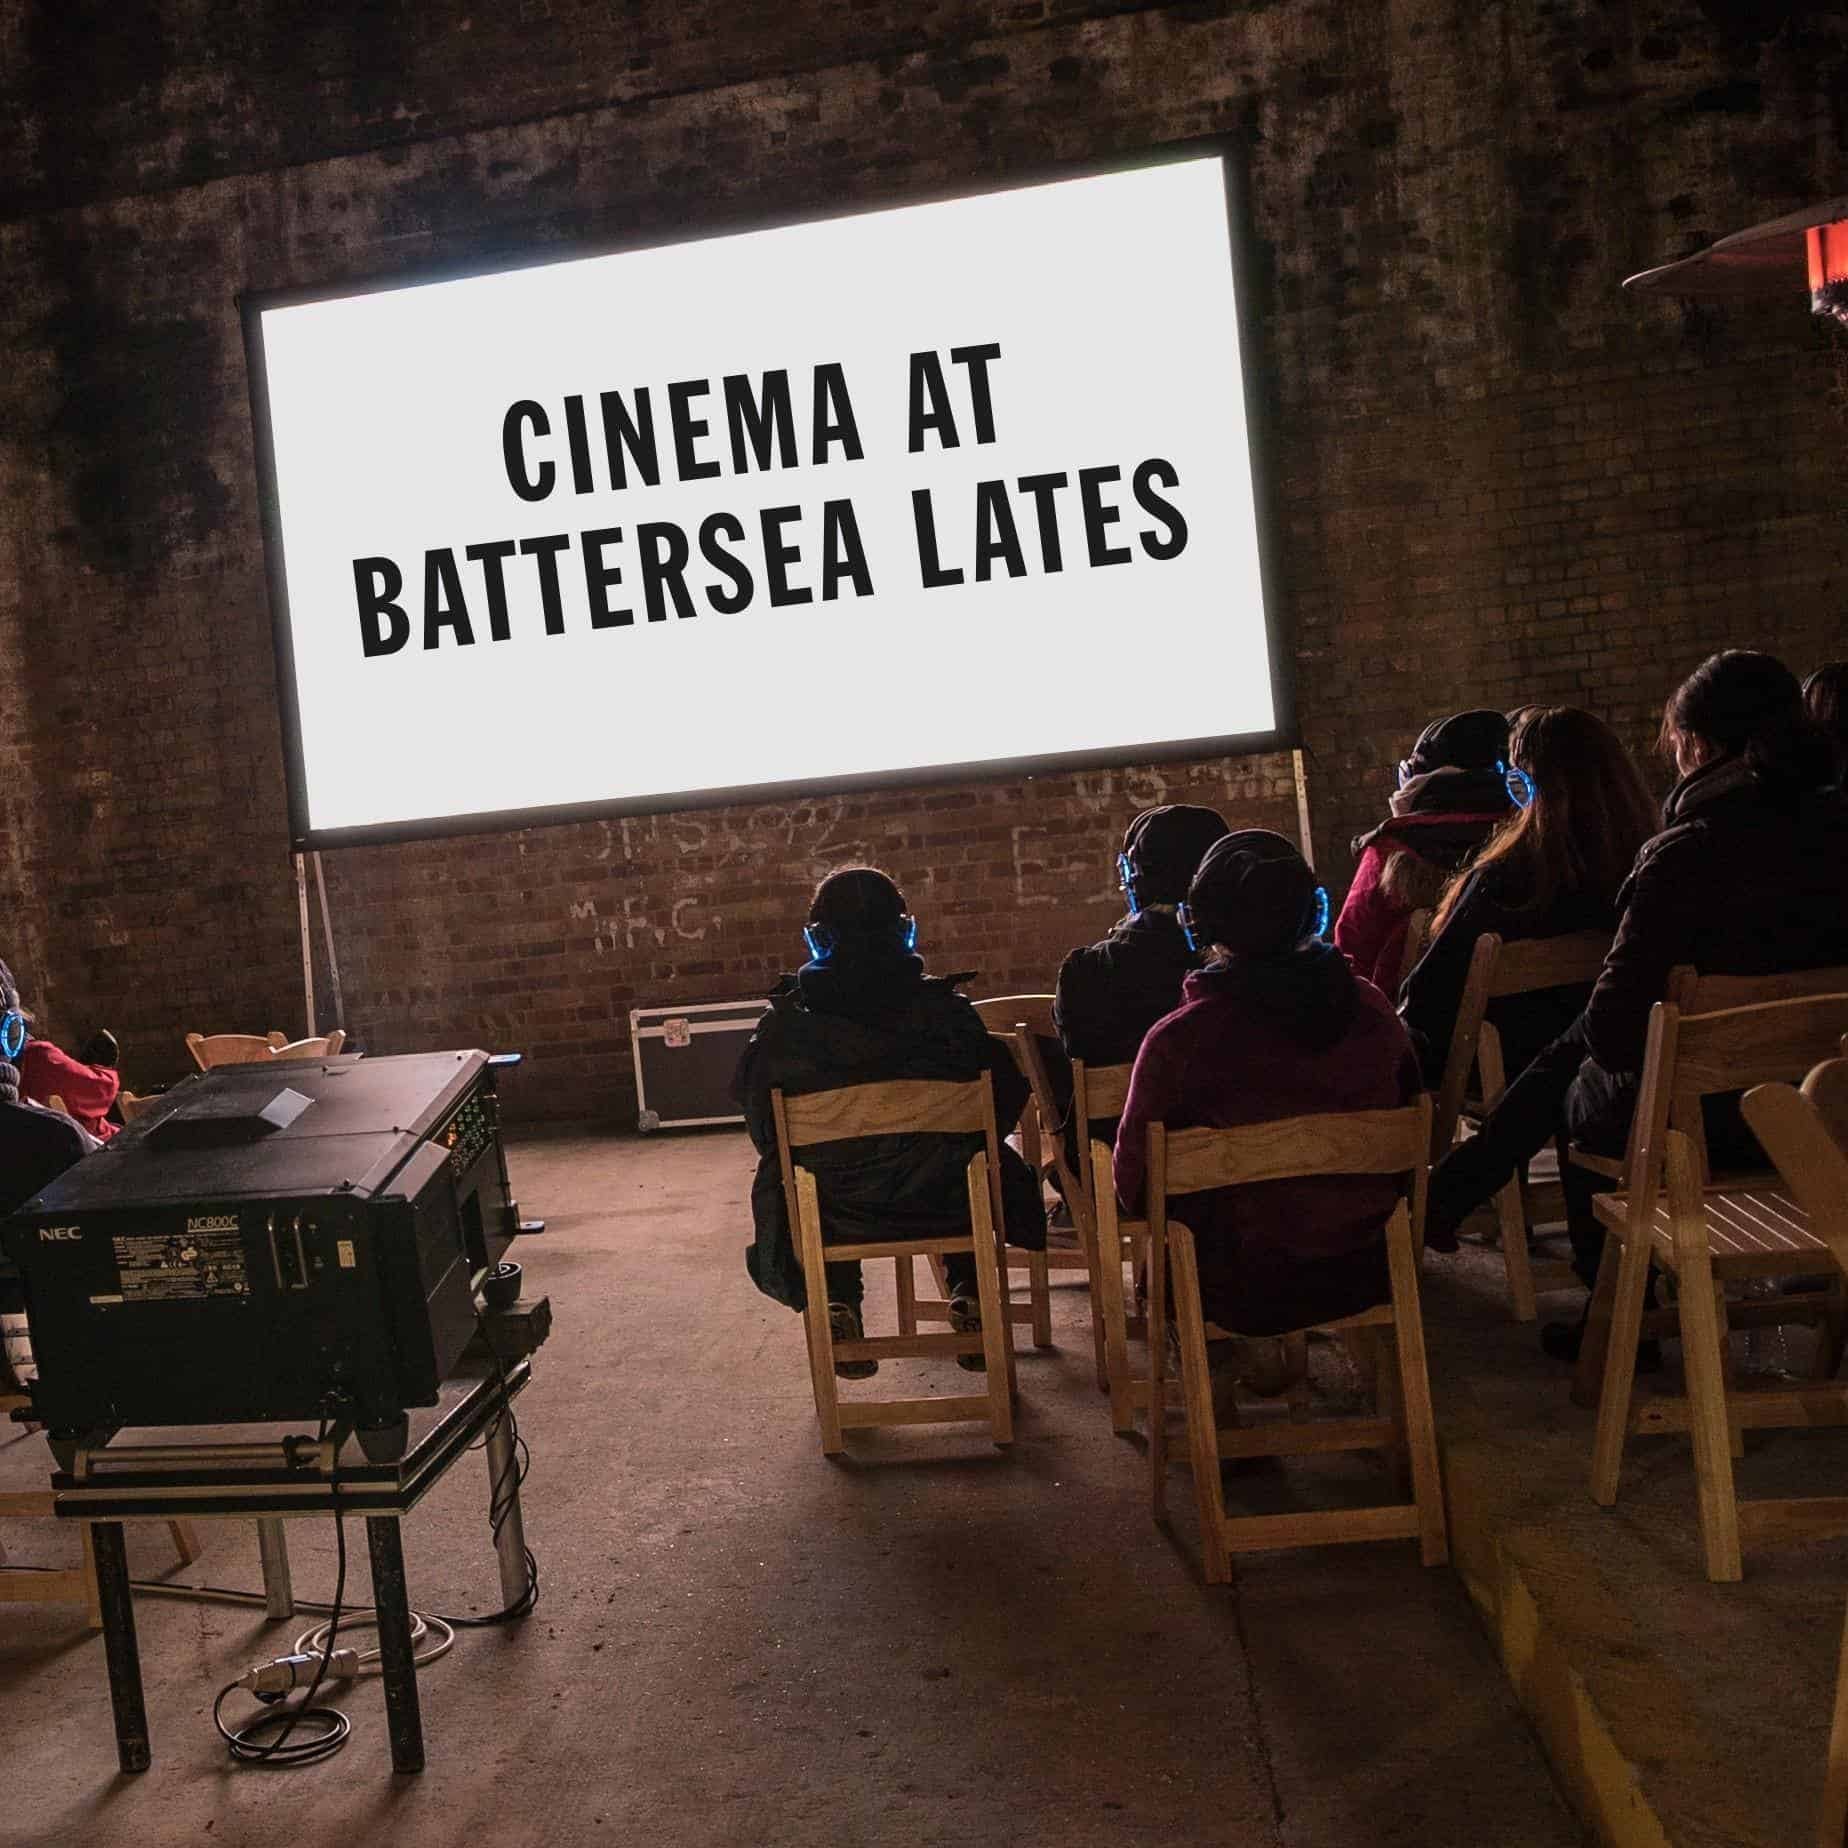 Cinema at Battersea Lates